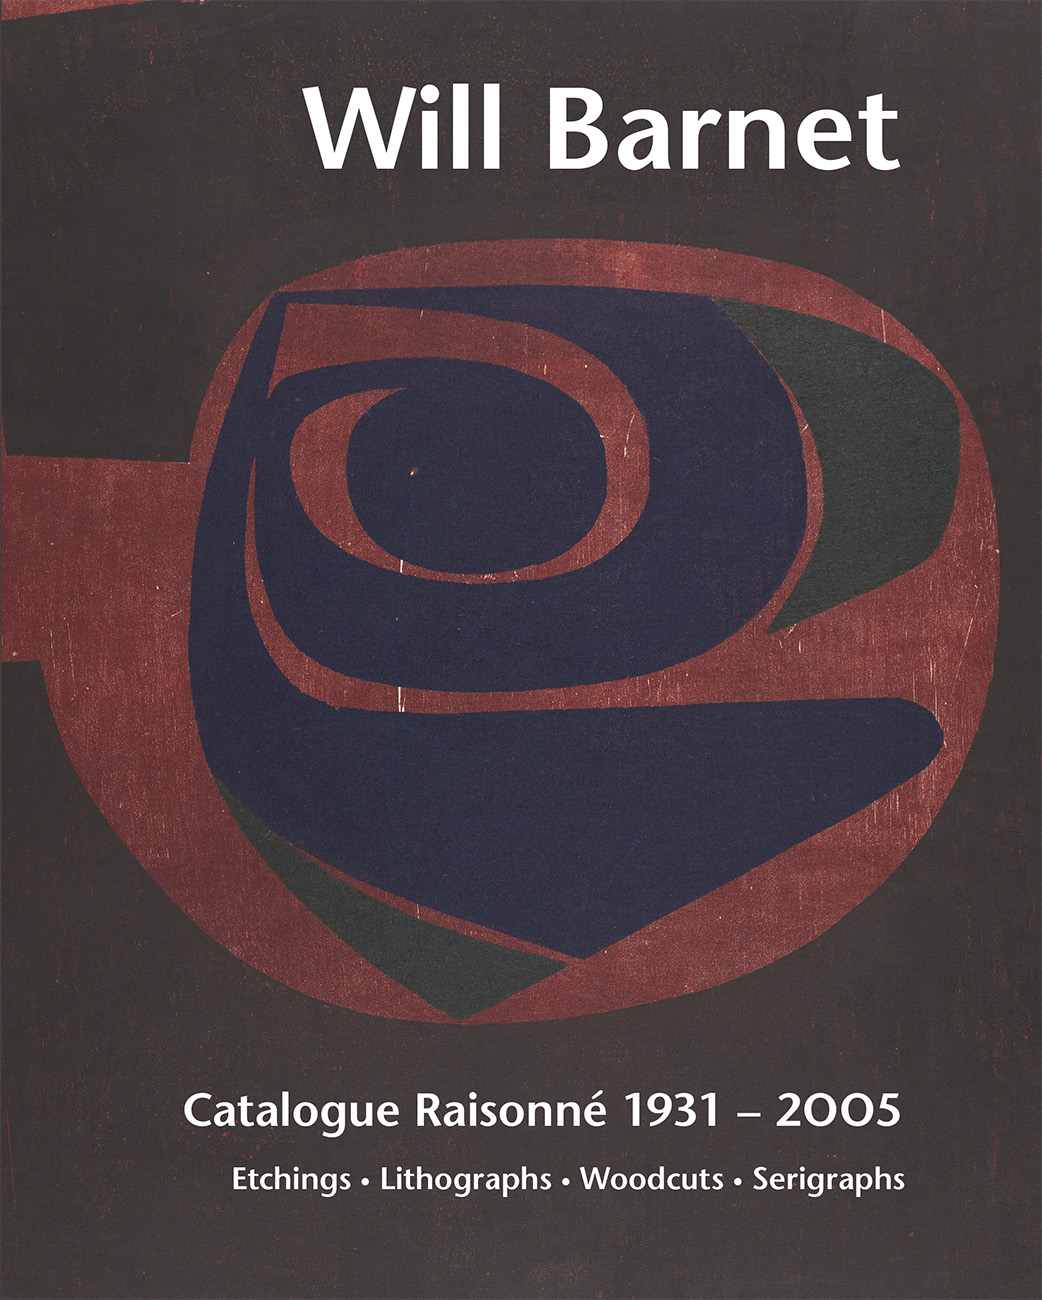 Will Barnet   Catalogue Raisonné 1931-2005   Designed by Roderick Stinehour Published by John Szoke Editions, New York, NY  Production supervision by Stinehour Editions